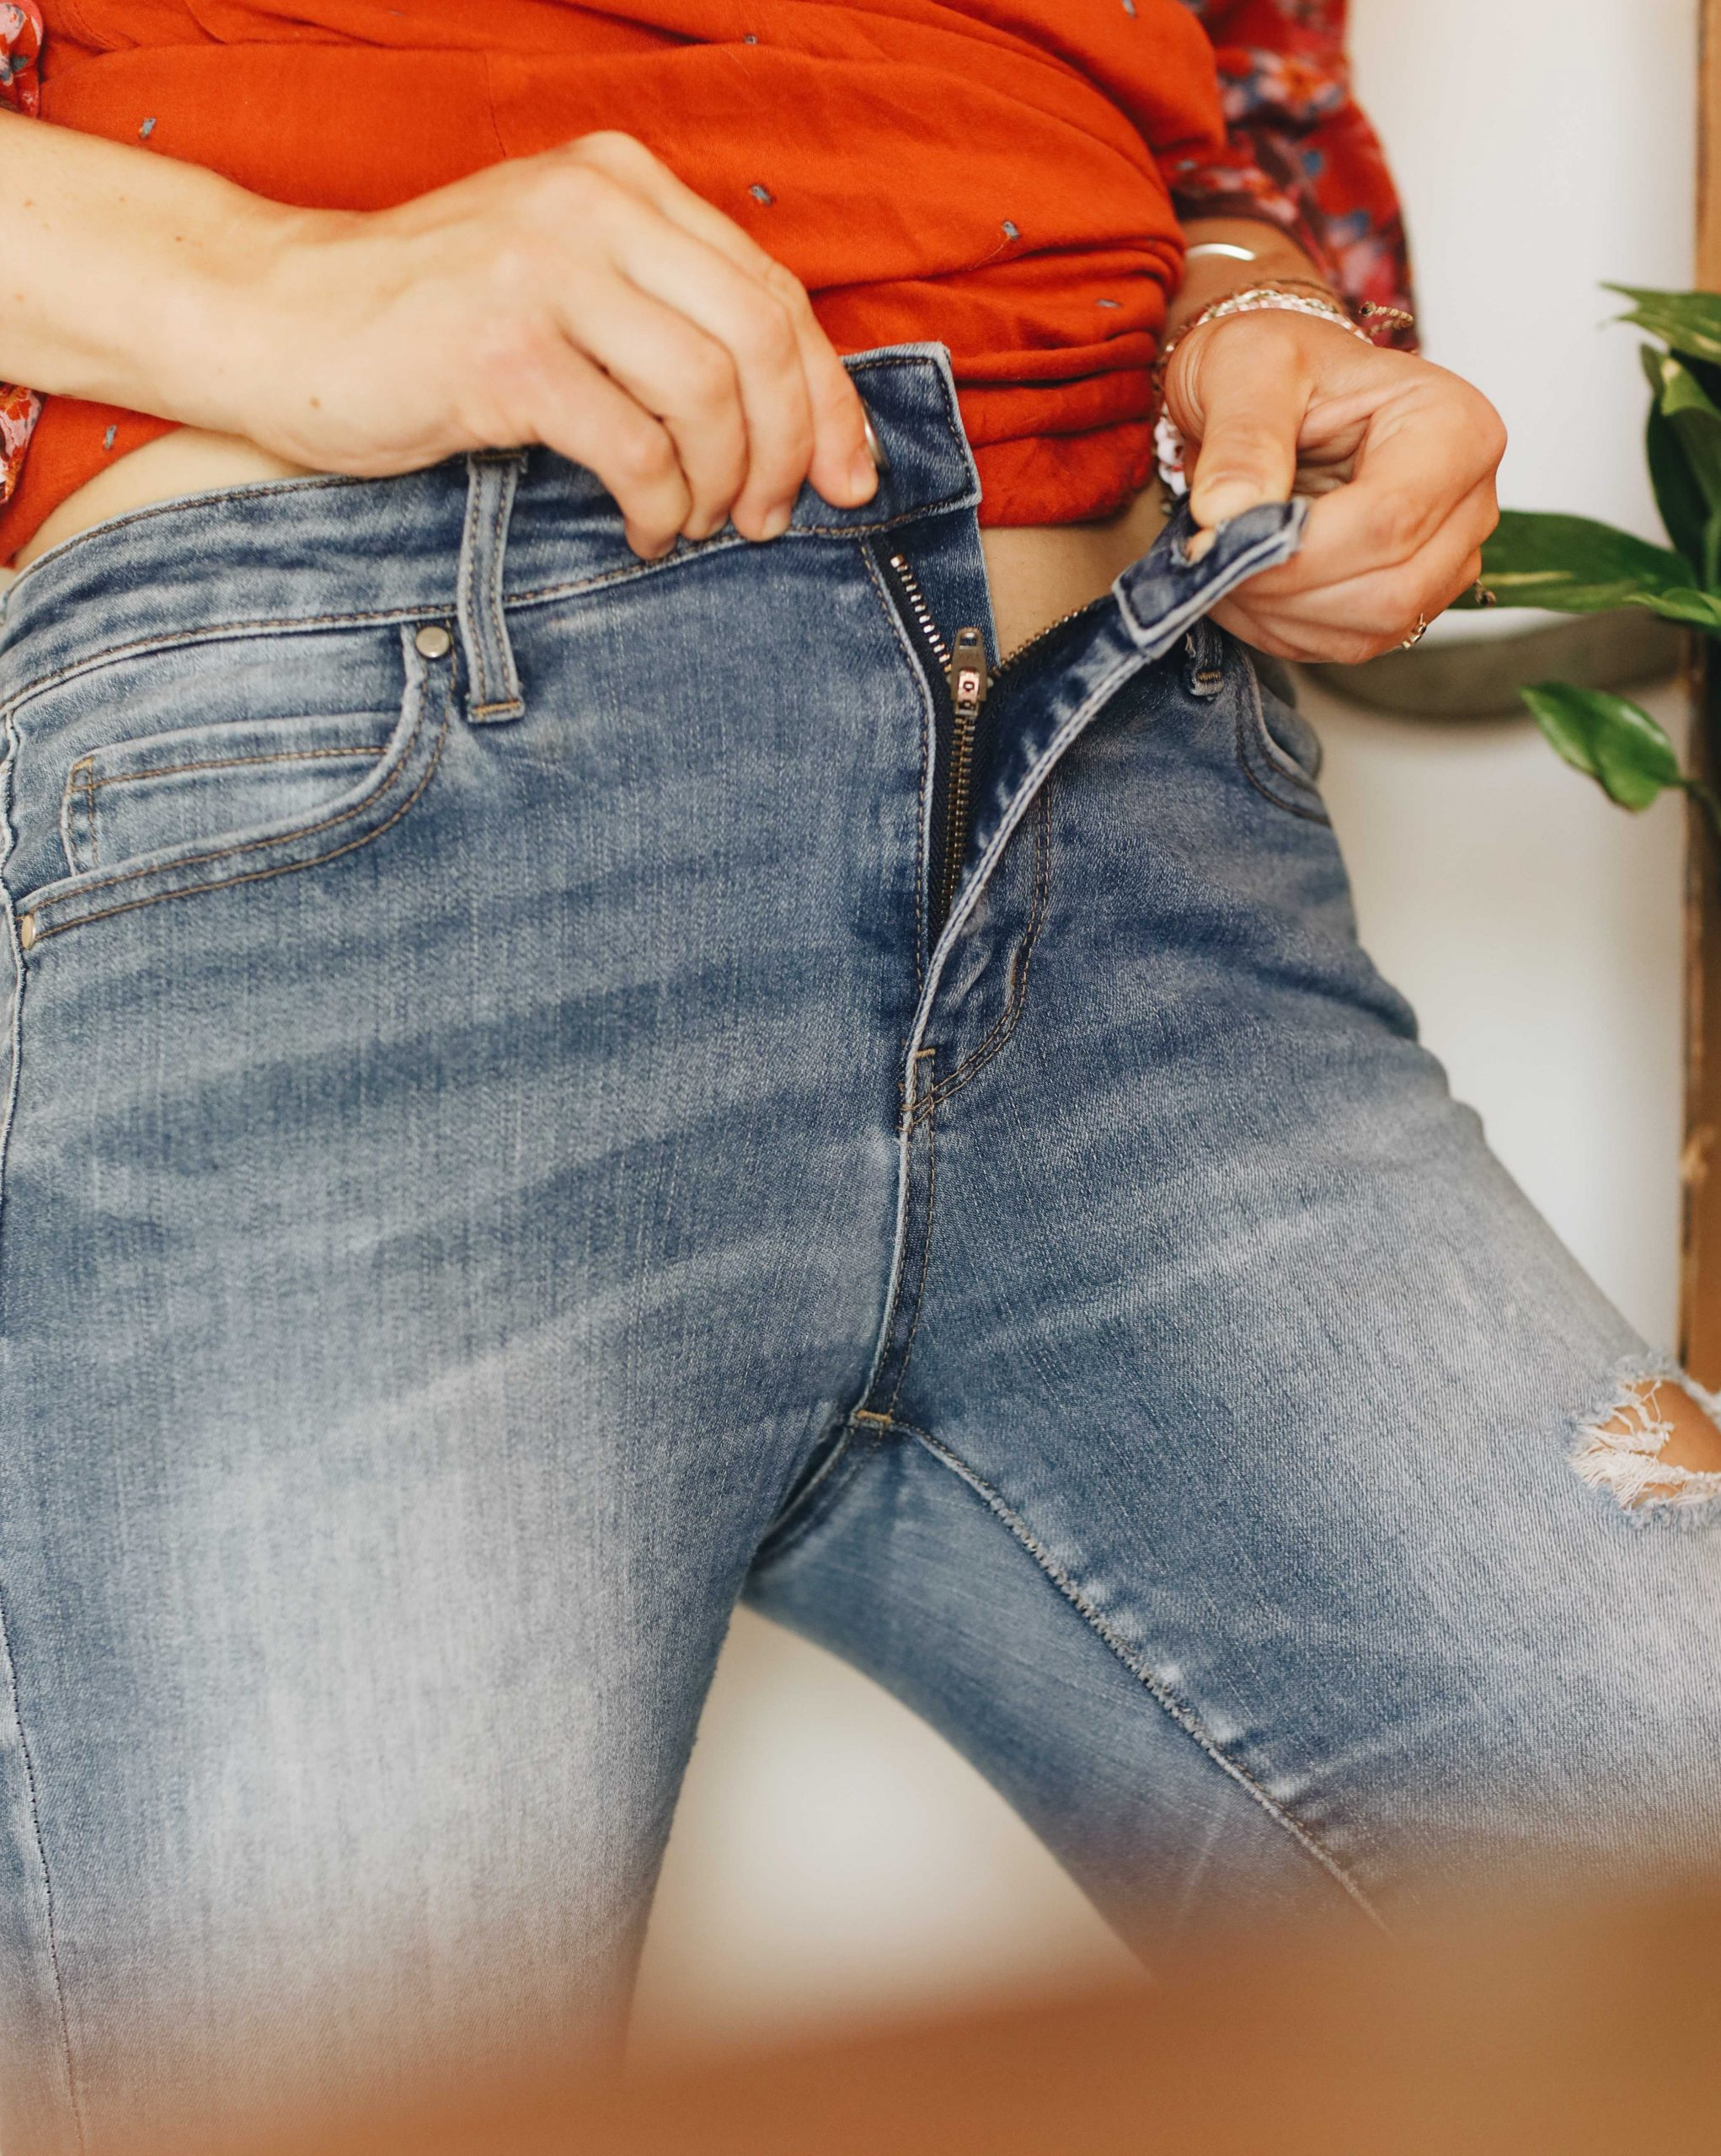 8 Ways To Tell If Your Jeans Fit Properly When You Try Them On